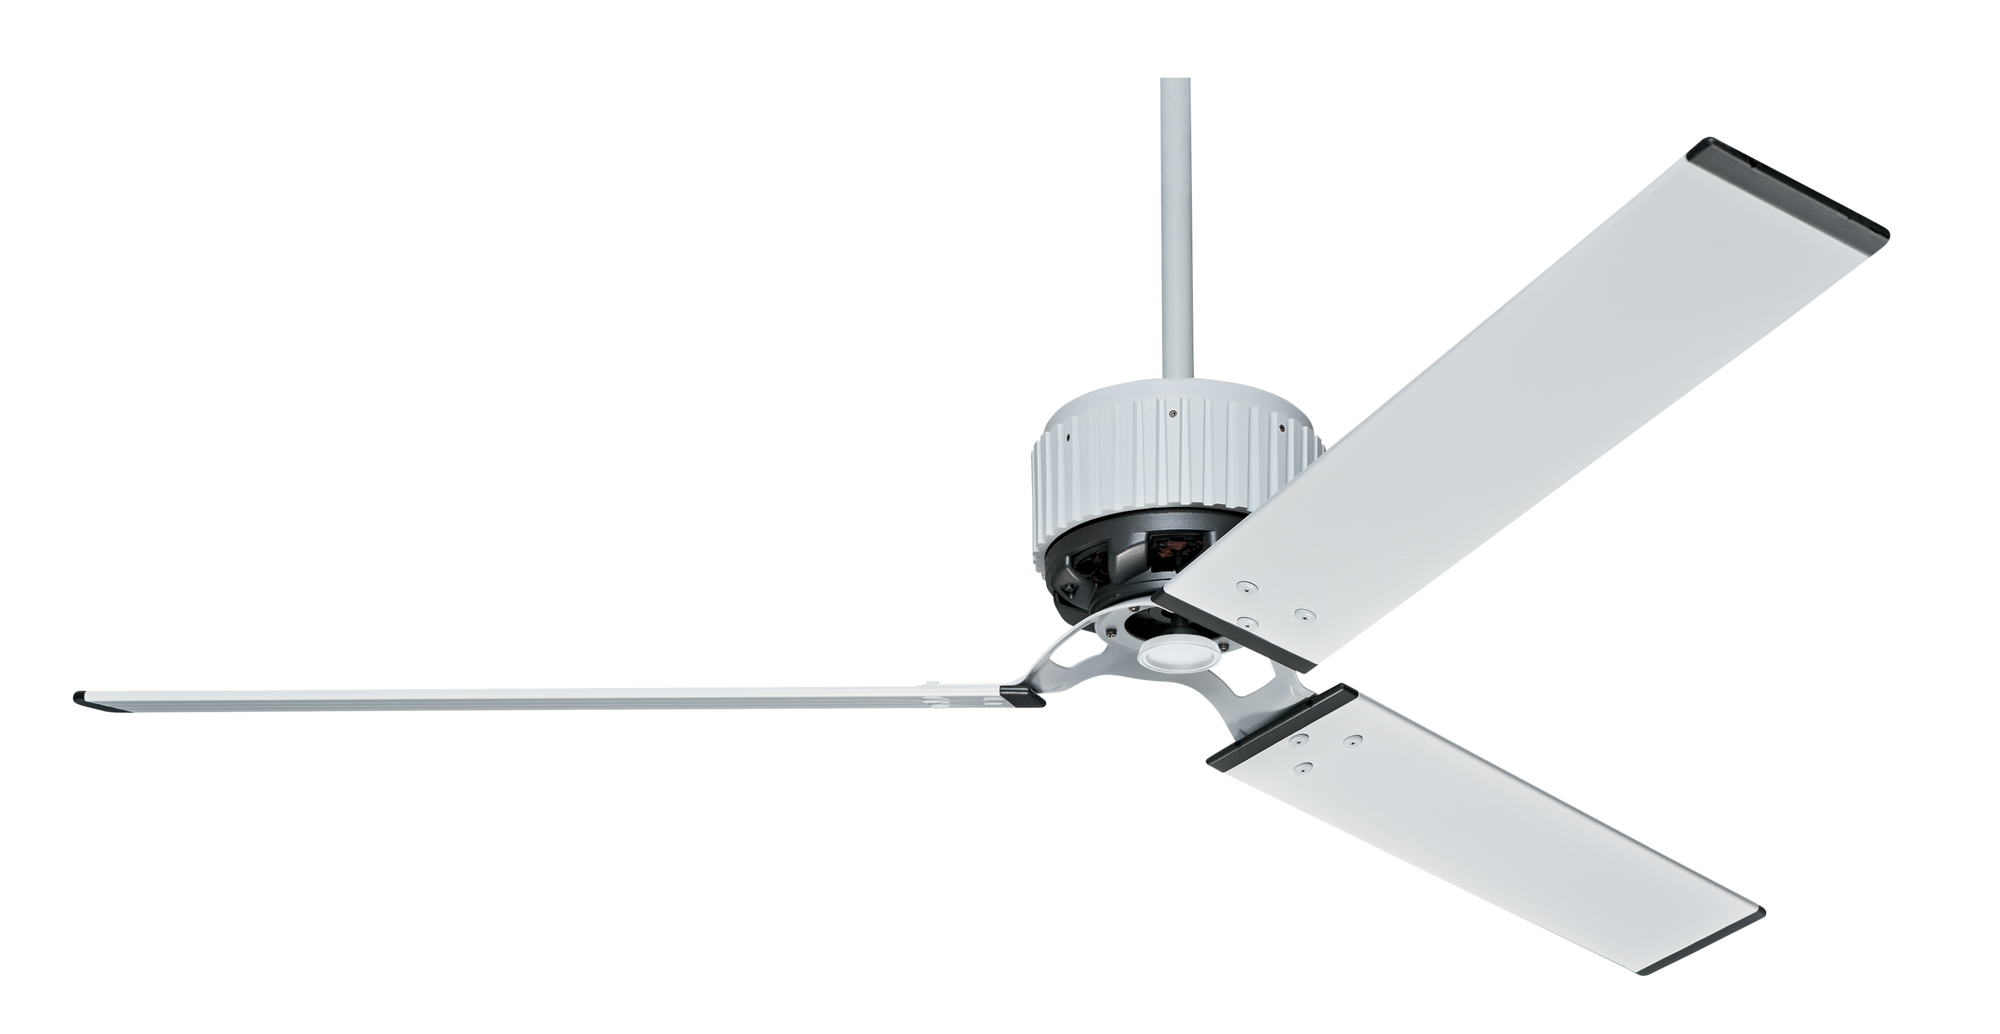 Hunter Indoor/Outdoor HFC Ceiling Fan without LightJD inch, White, 59134